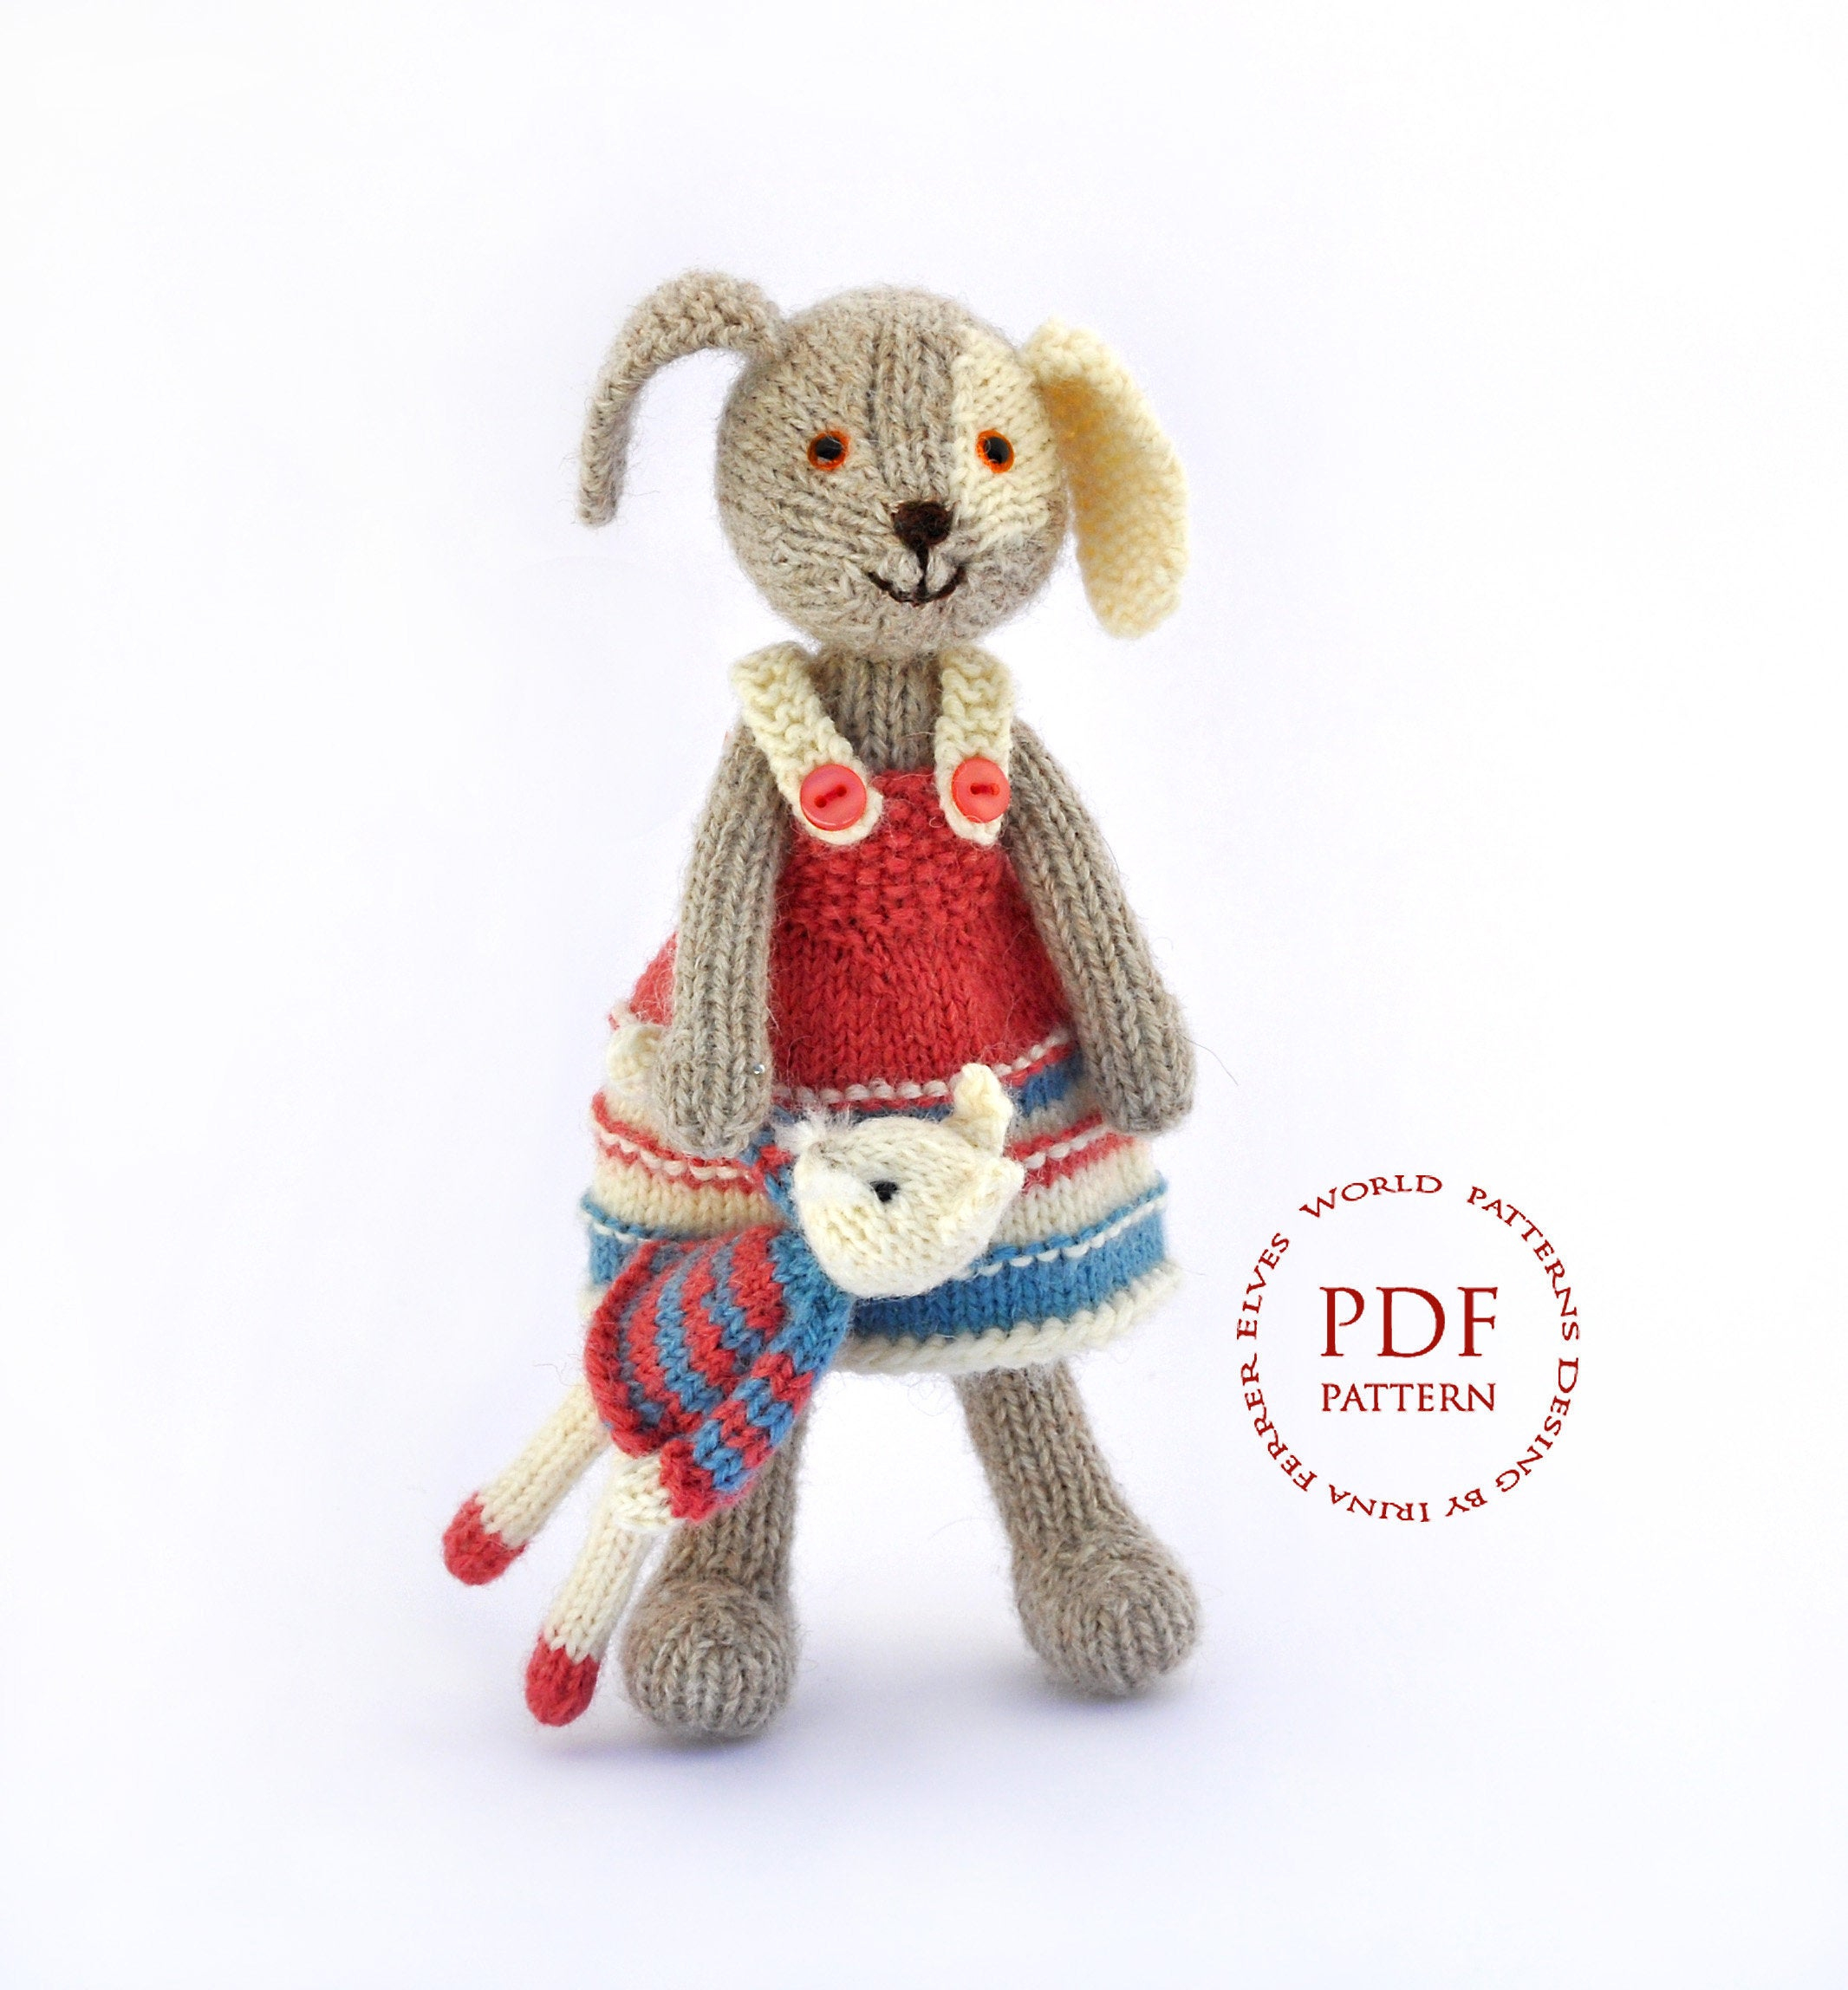 Knitting Patterns For Baby Toys Pattern Knitting Dog Pattern Toy Patterns Pdf Toy Pattern Ba Toy Pattern Knitting Toy Pattern Child Toy Patterns Pdf Dog Pattern Knit Toy